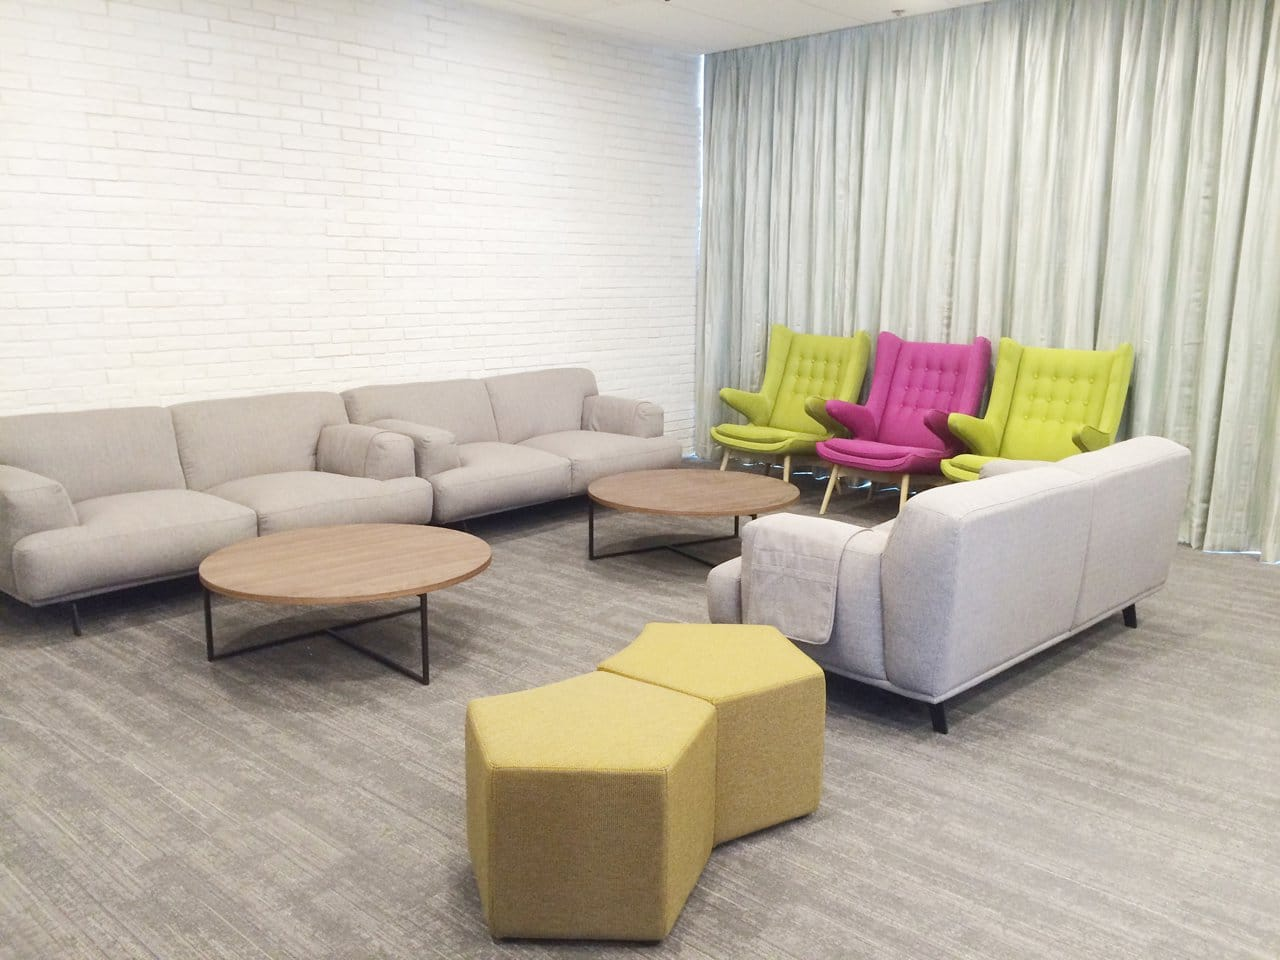 Expedia - New Bridge Road | Products Seen: [Seed Modular Stool, Campbell 2.5 Seater Sofa, Satchie Modular Coffee Table & Papa Lounge Set (Replica)]<br />